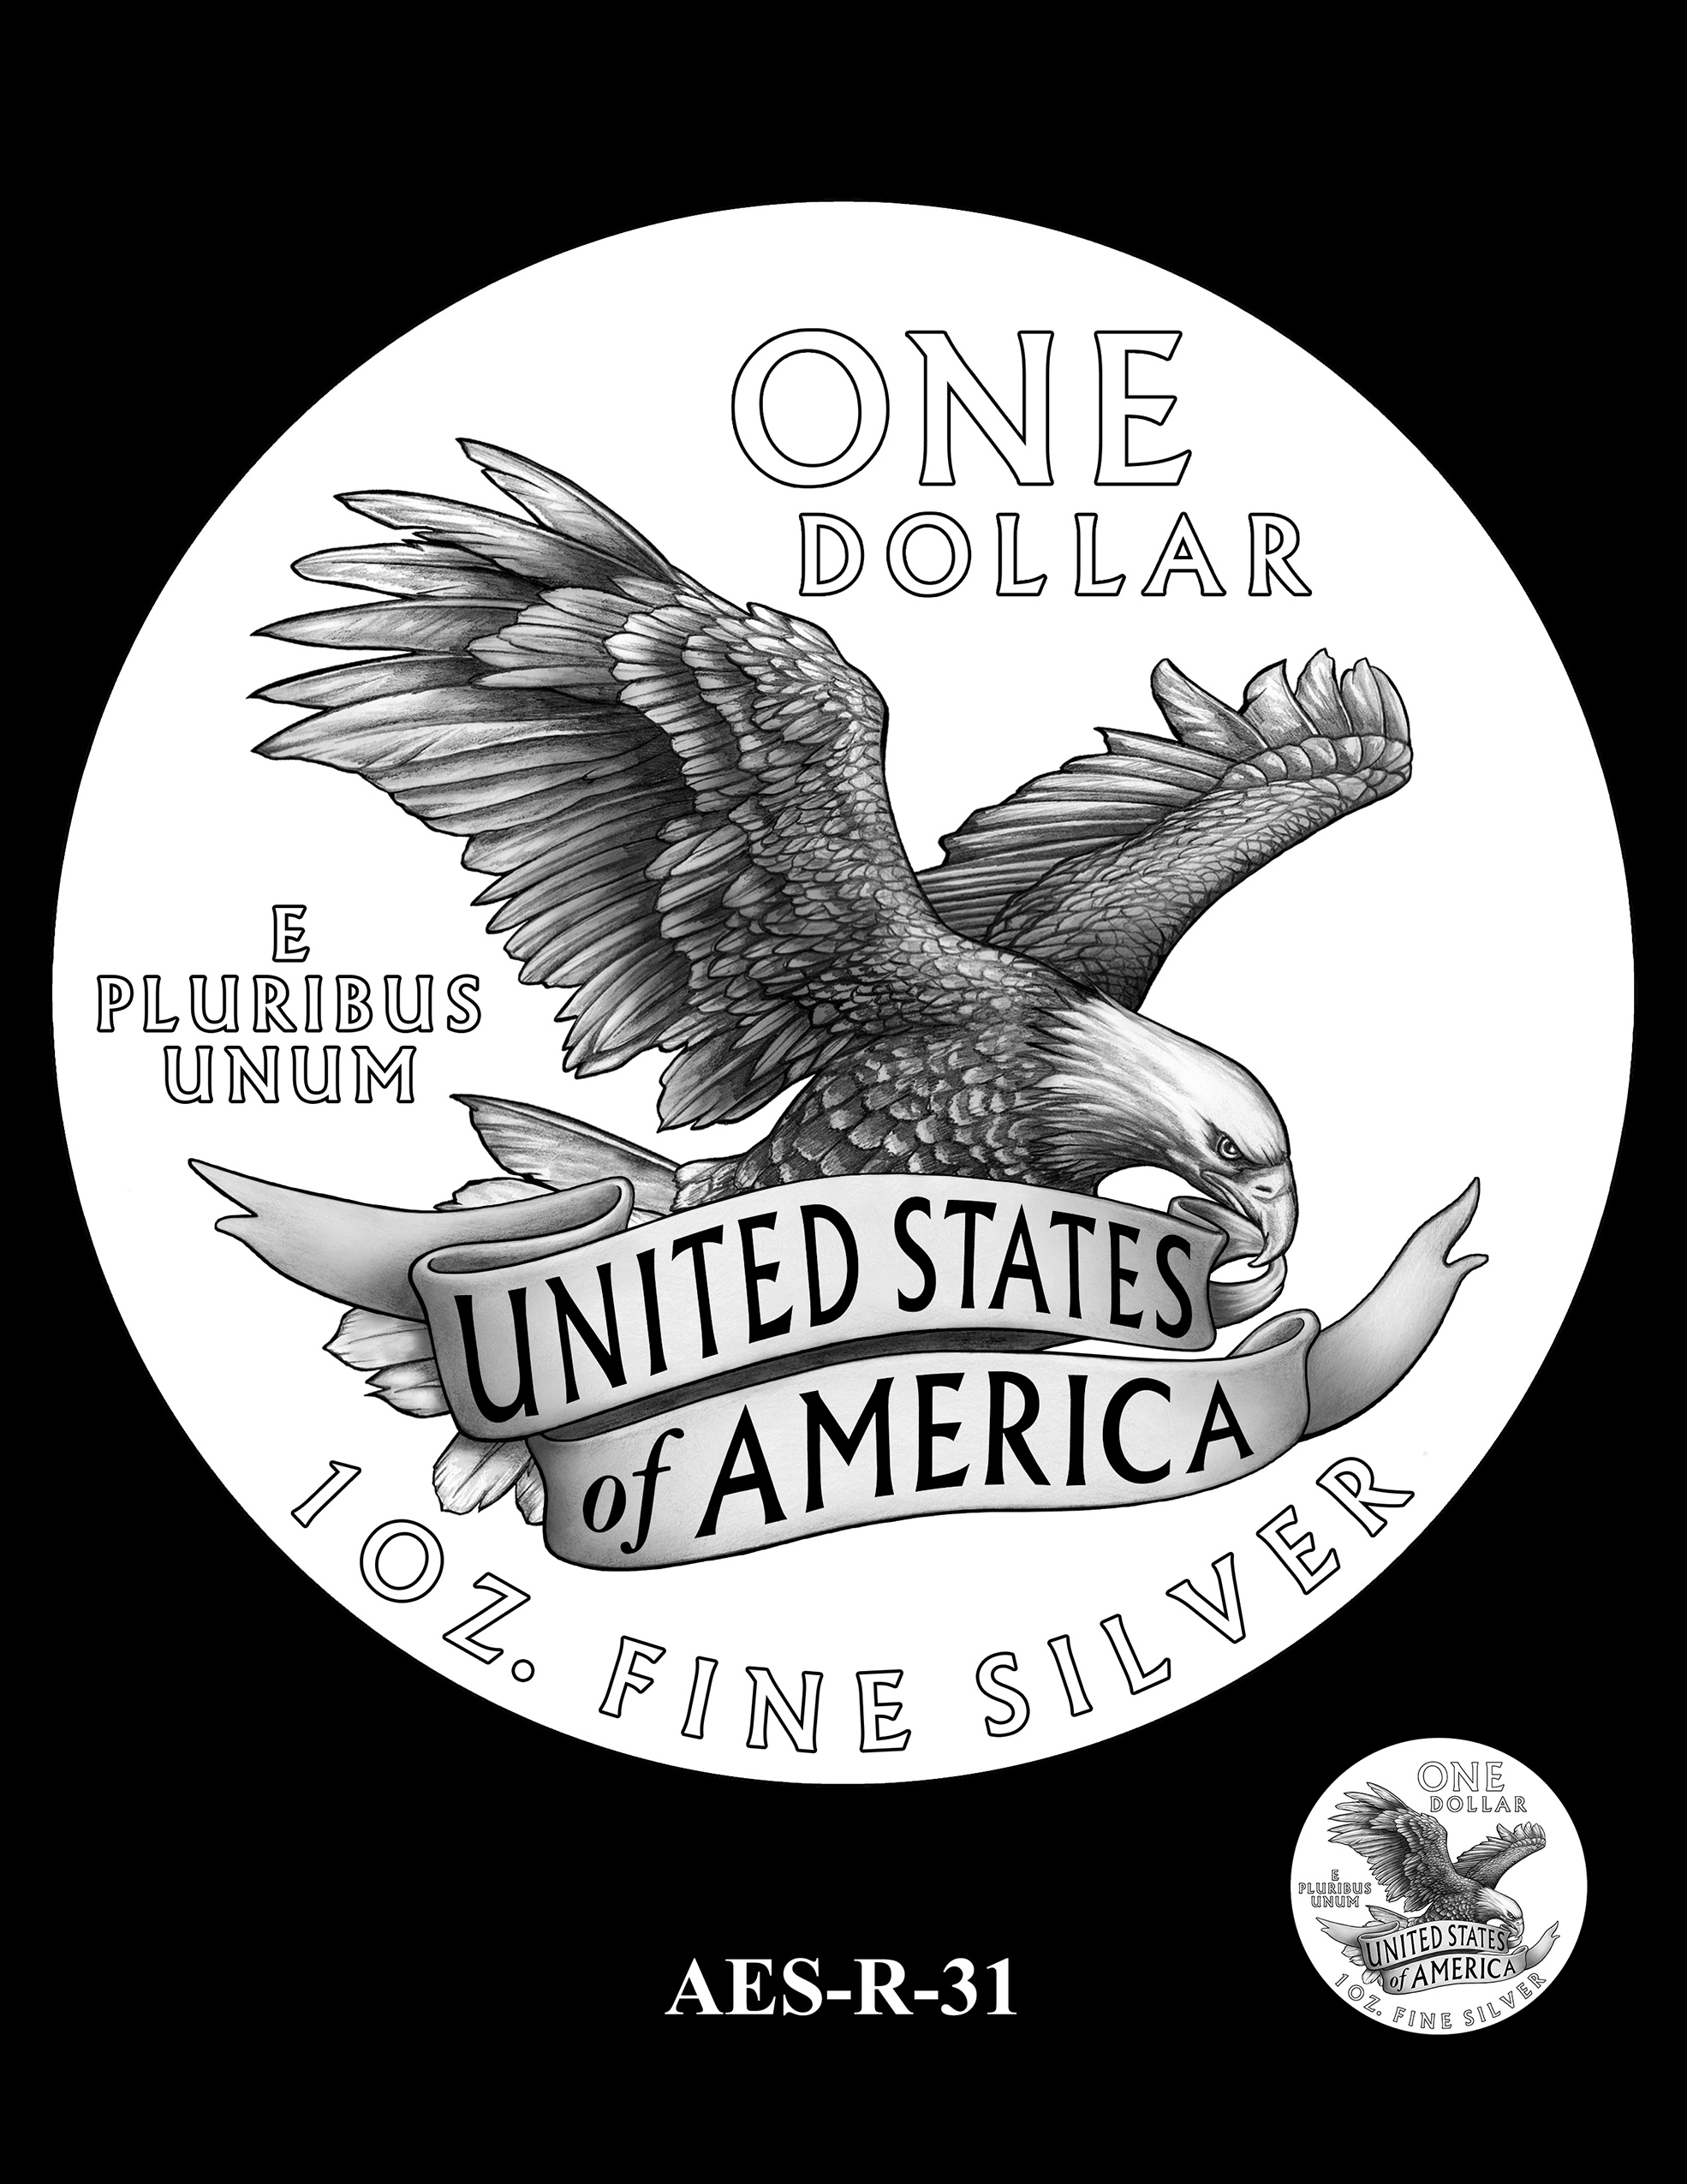 AES-R-31 -- American Eagle Proof and Bullion Silver Coin - Reverse